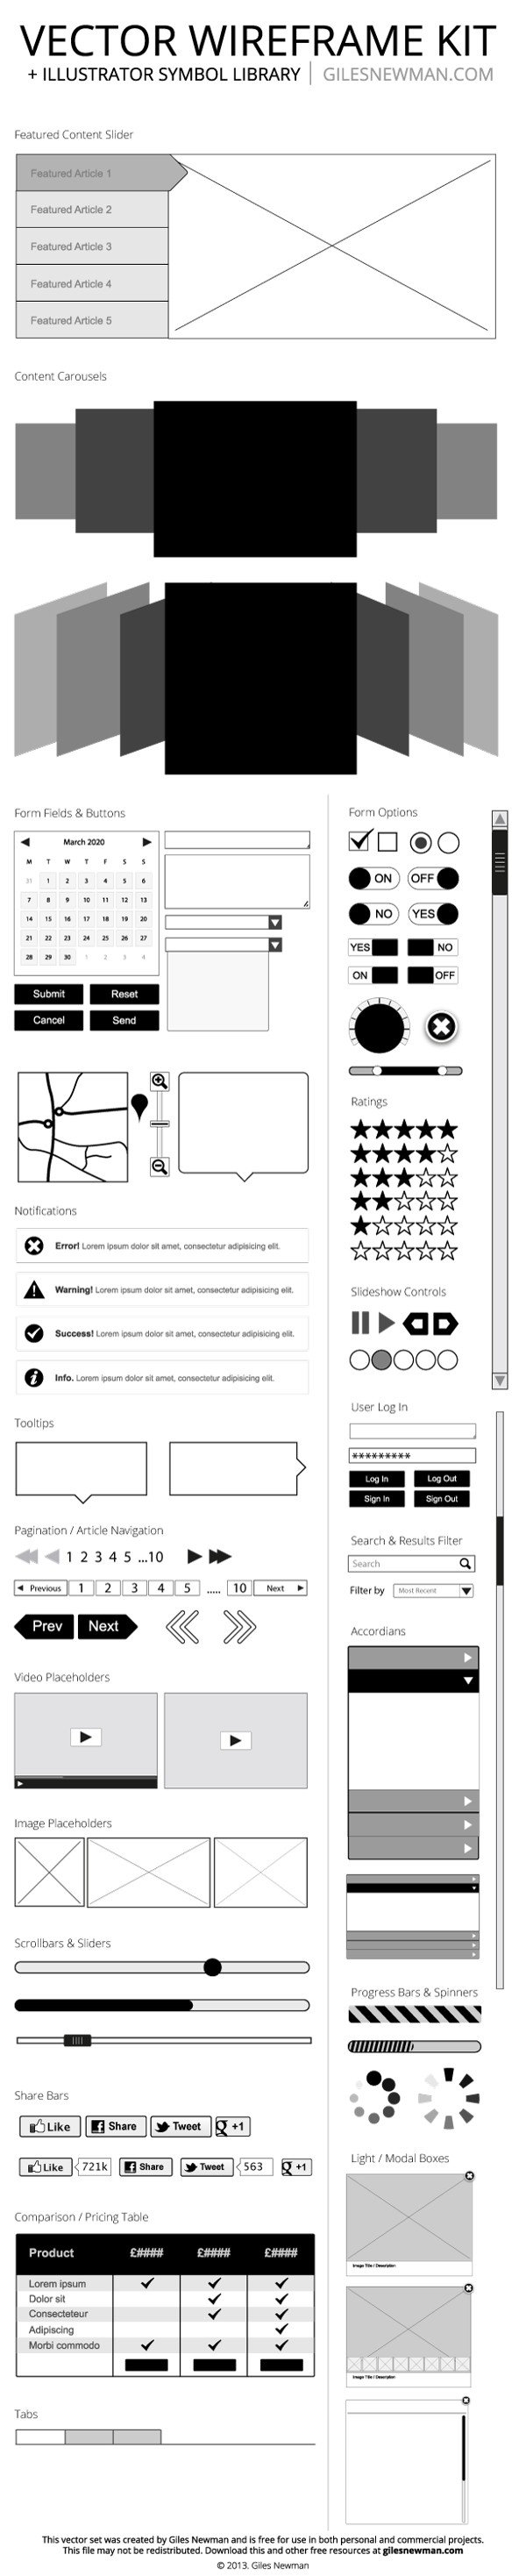 Kit de Wireframes en vectores